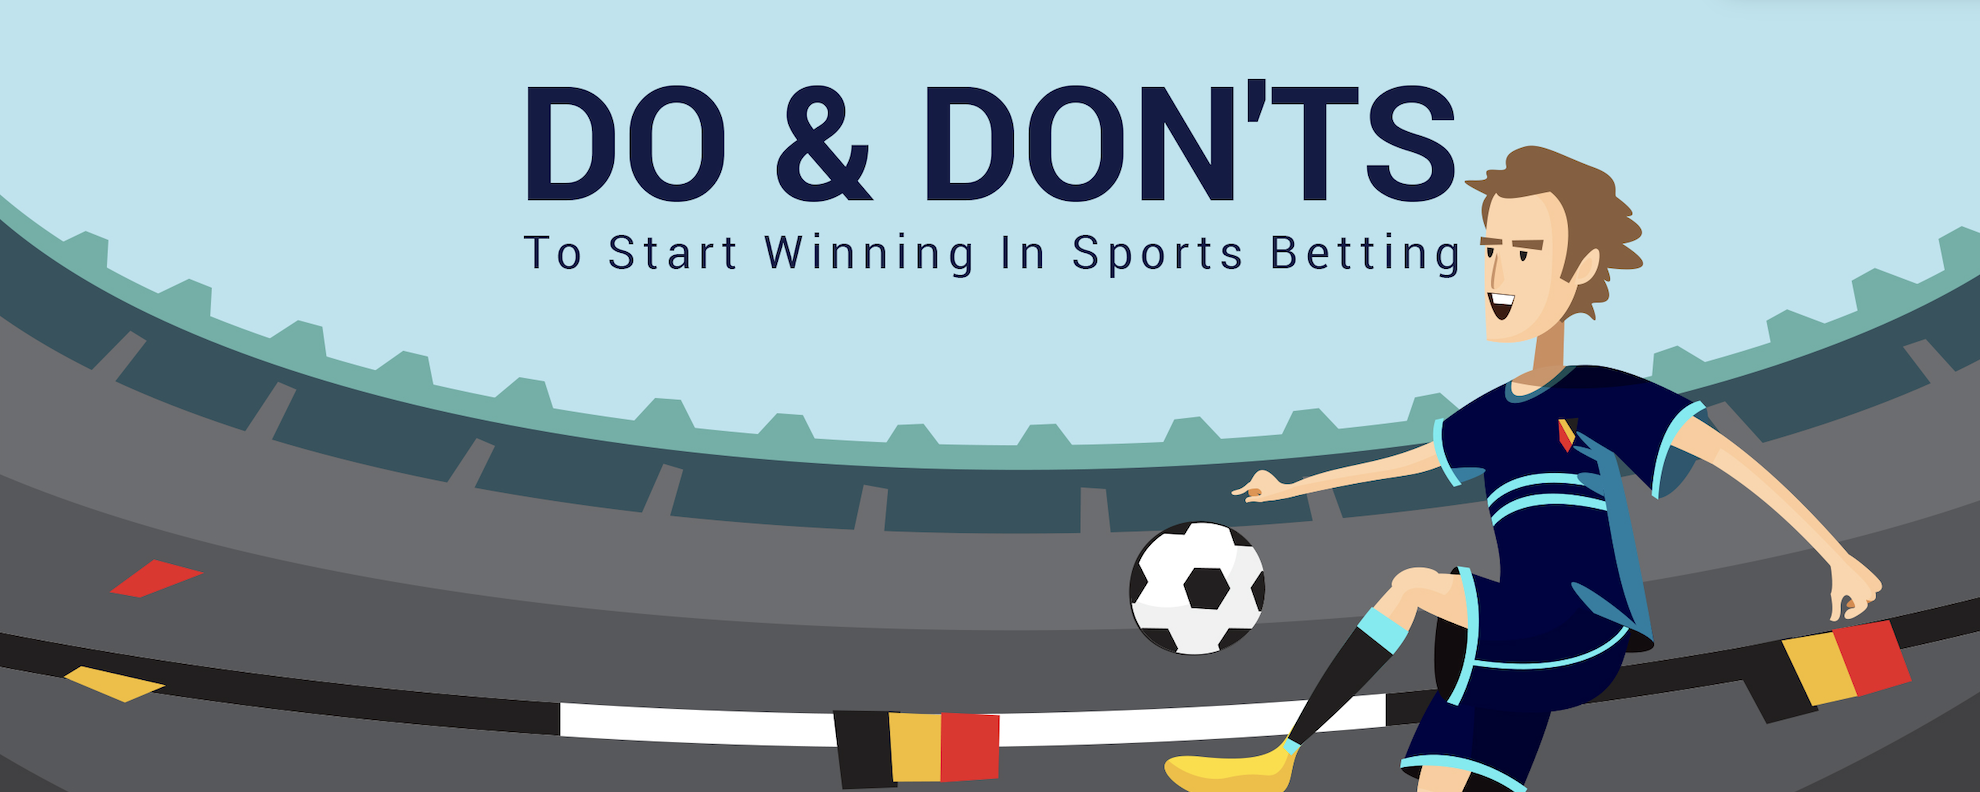 [Infographic] DOs & DONTs to Start Winning In Sports Betting